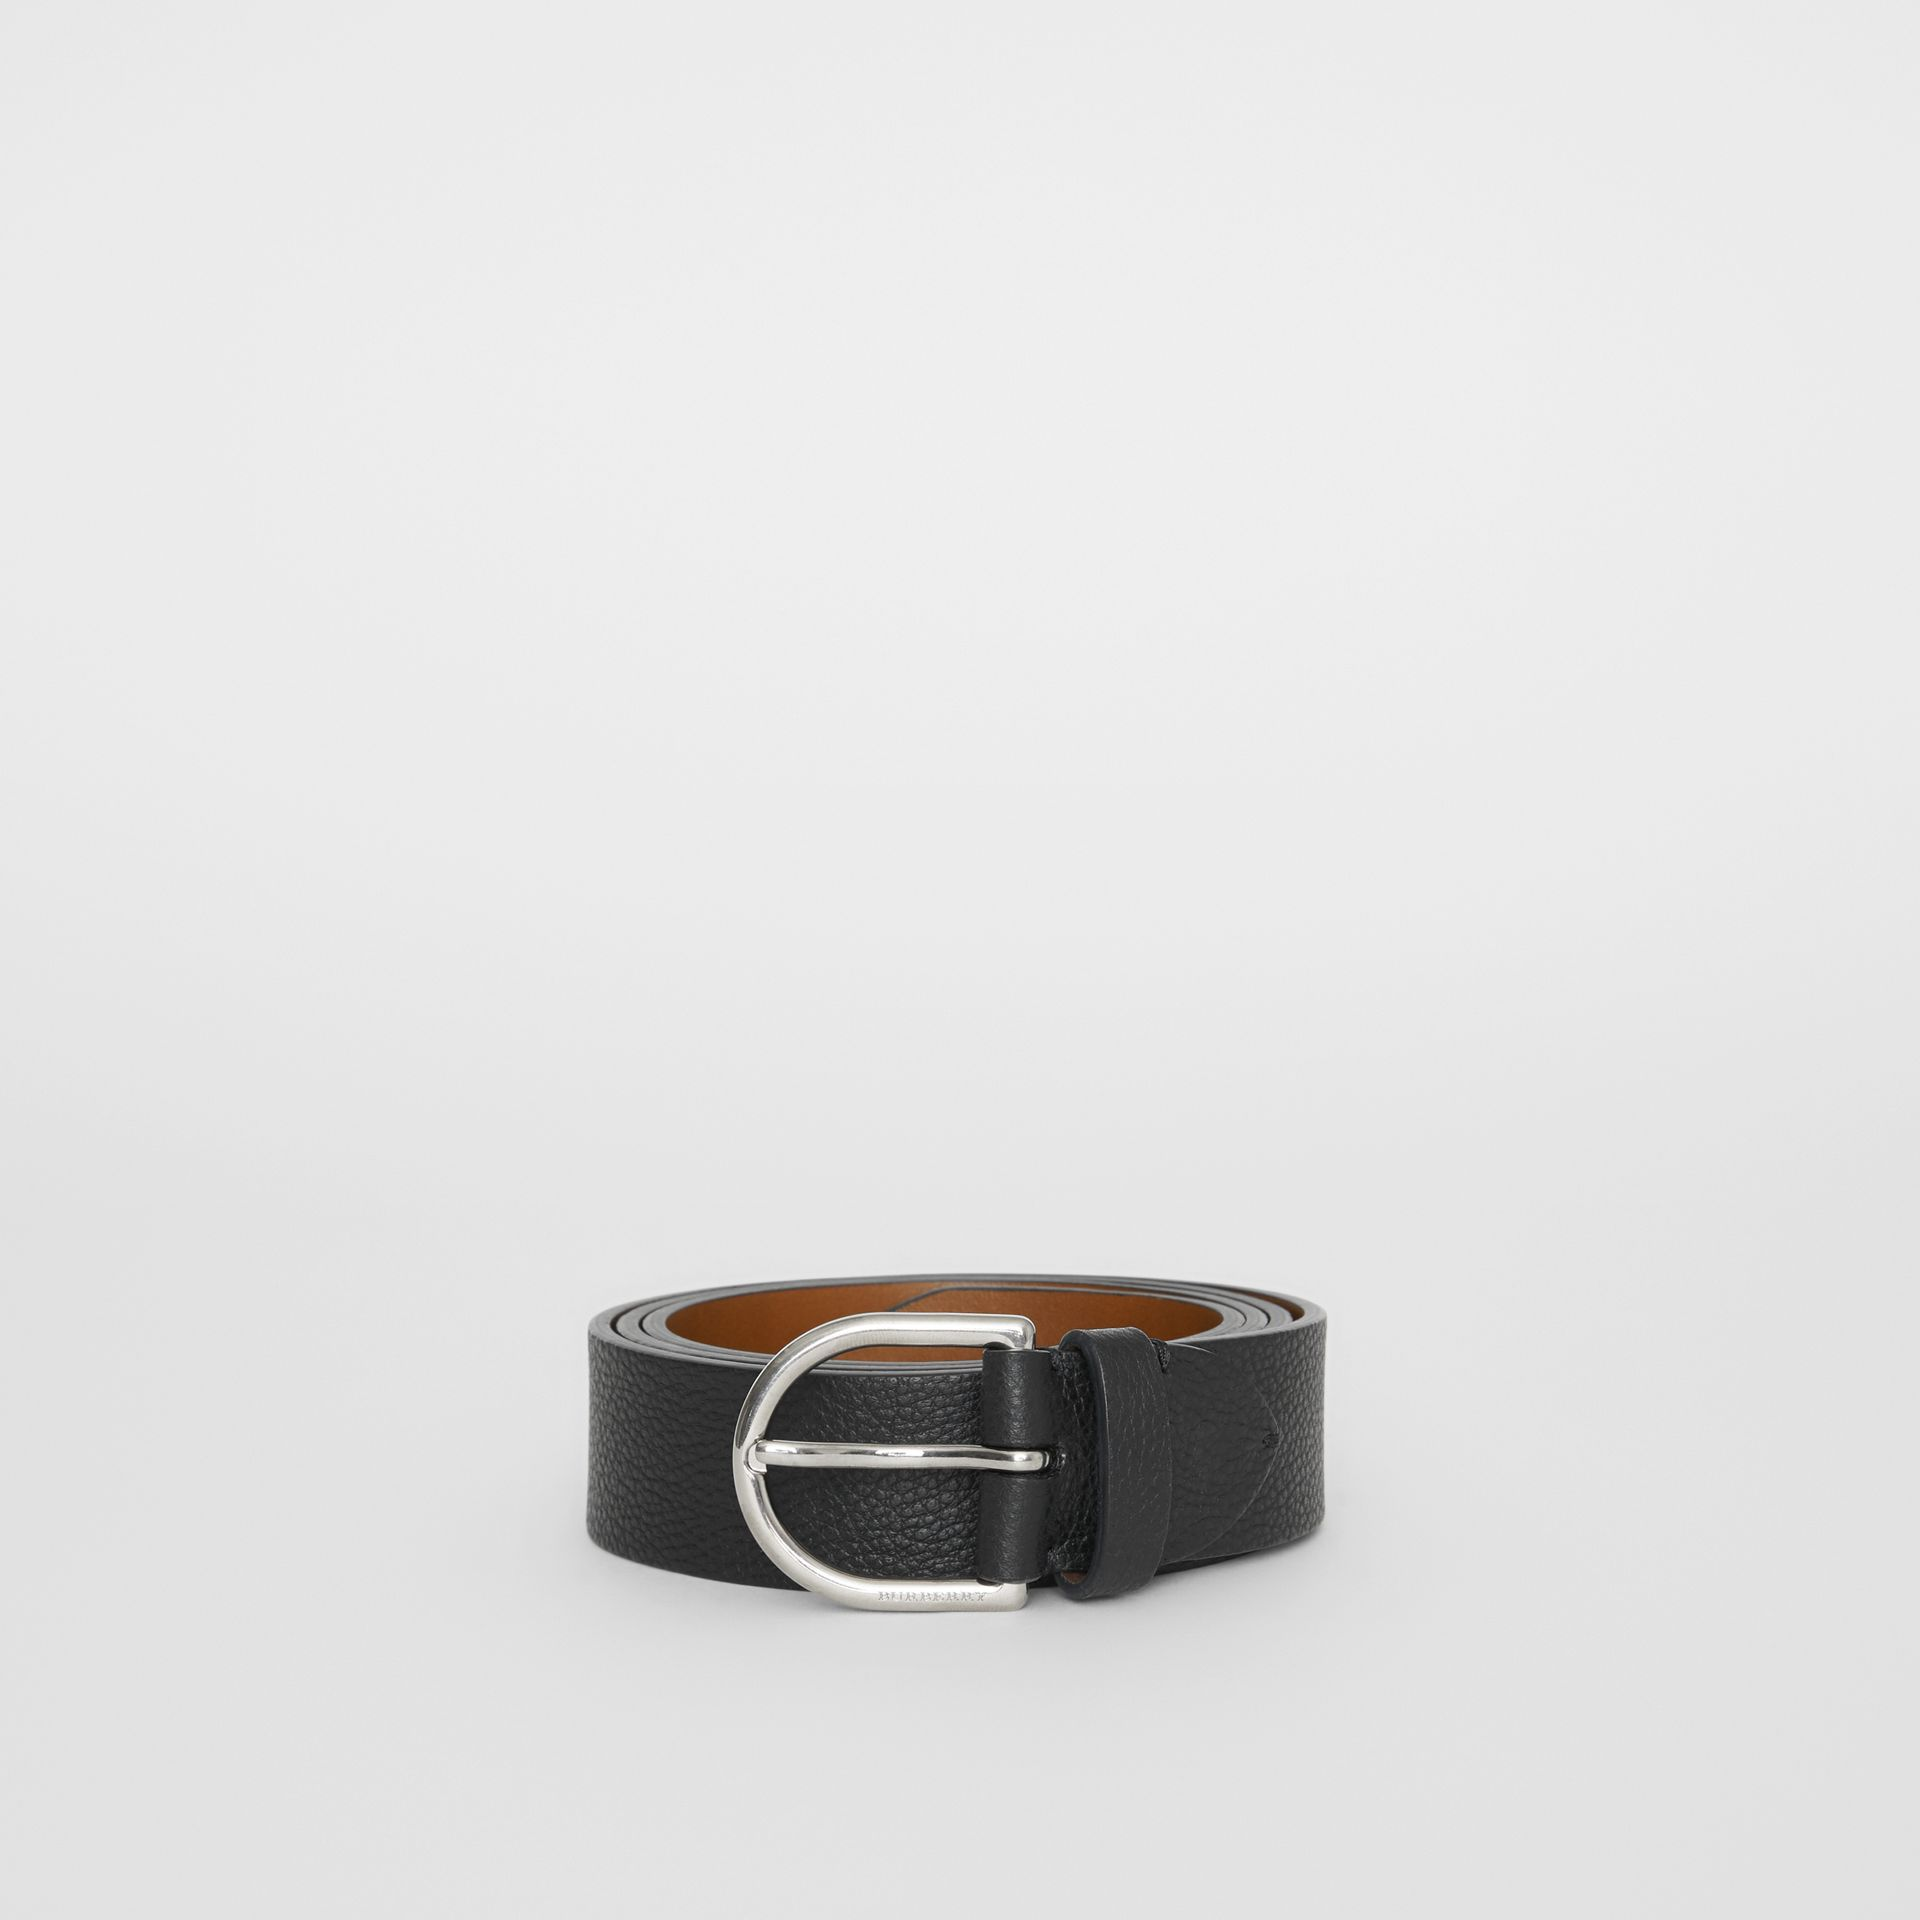 D-shaped Buckle Grainy Leather Belt in Black - Men | Burberry Singapore - gallery image 3